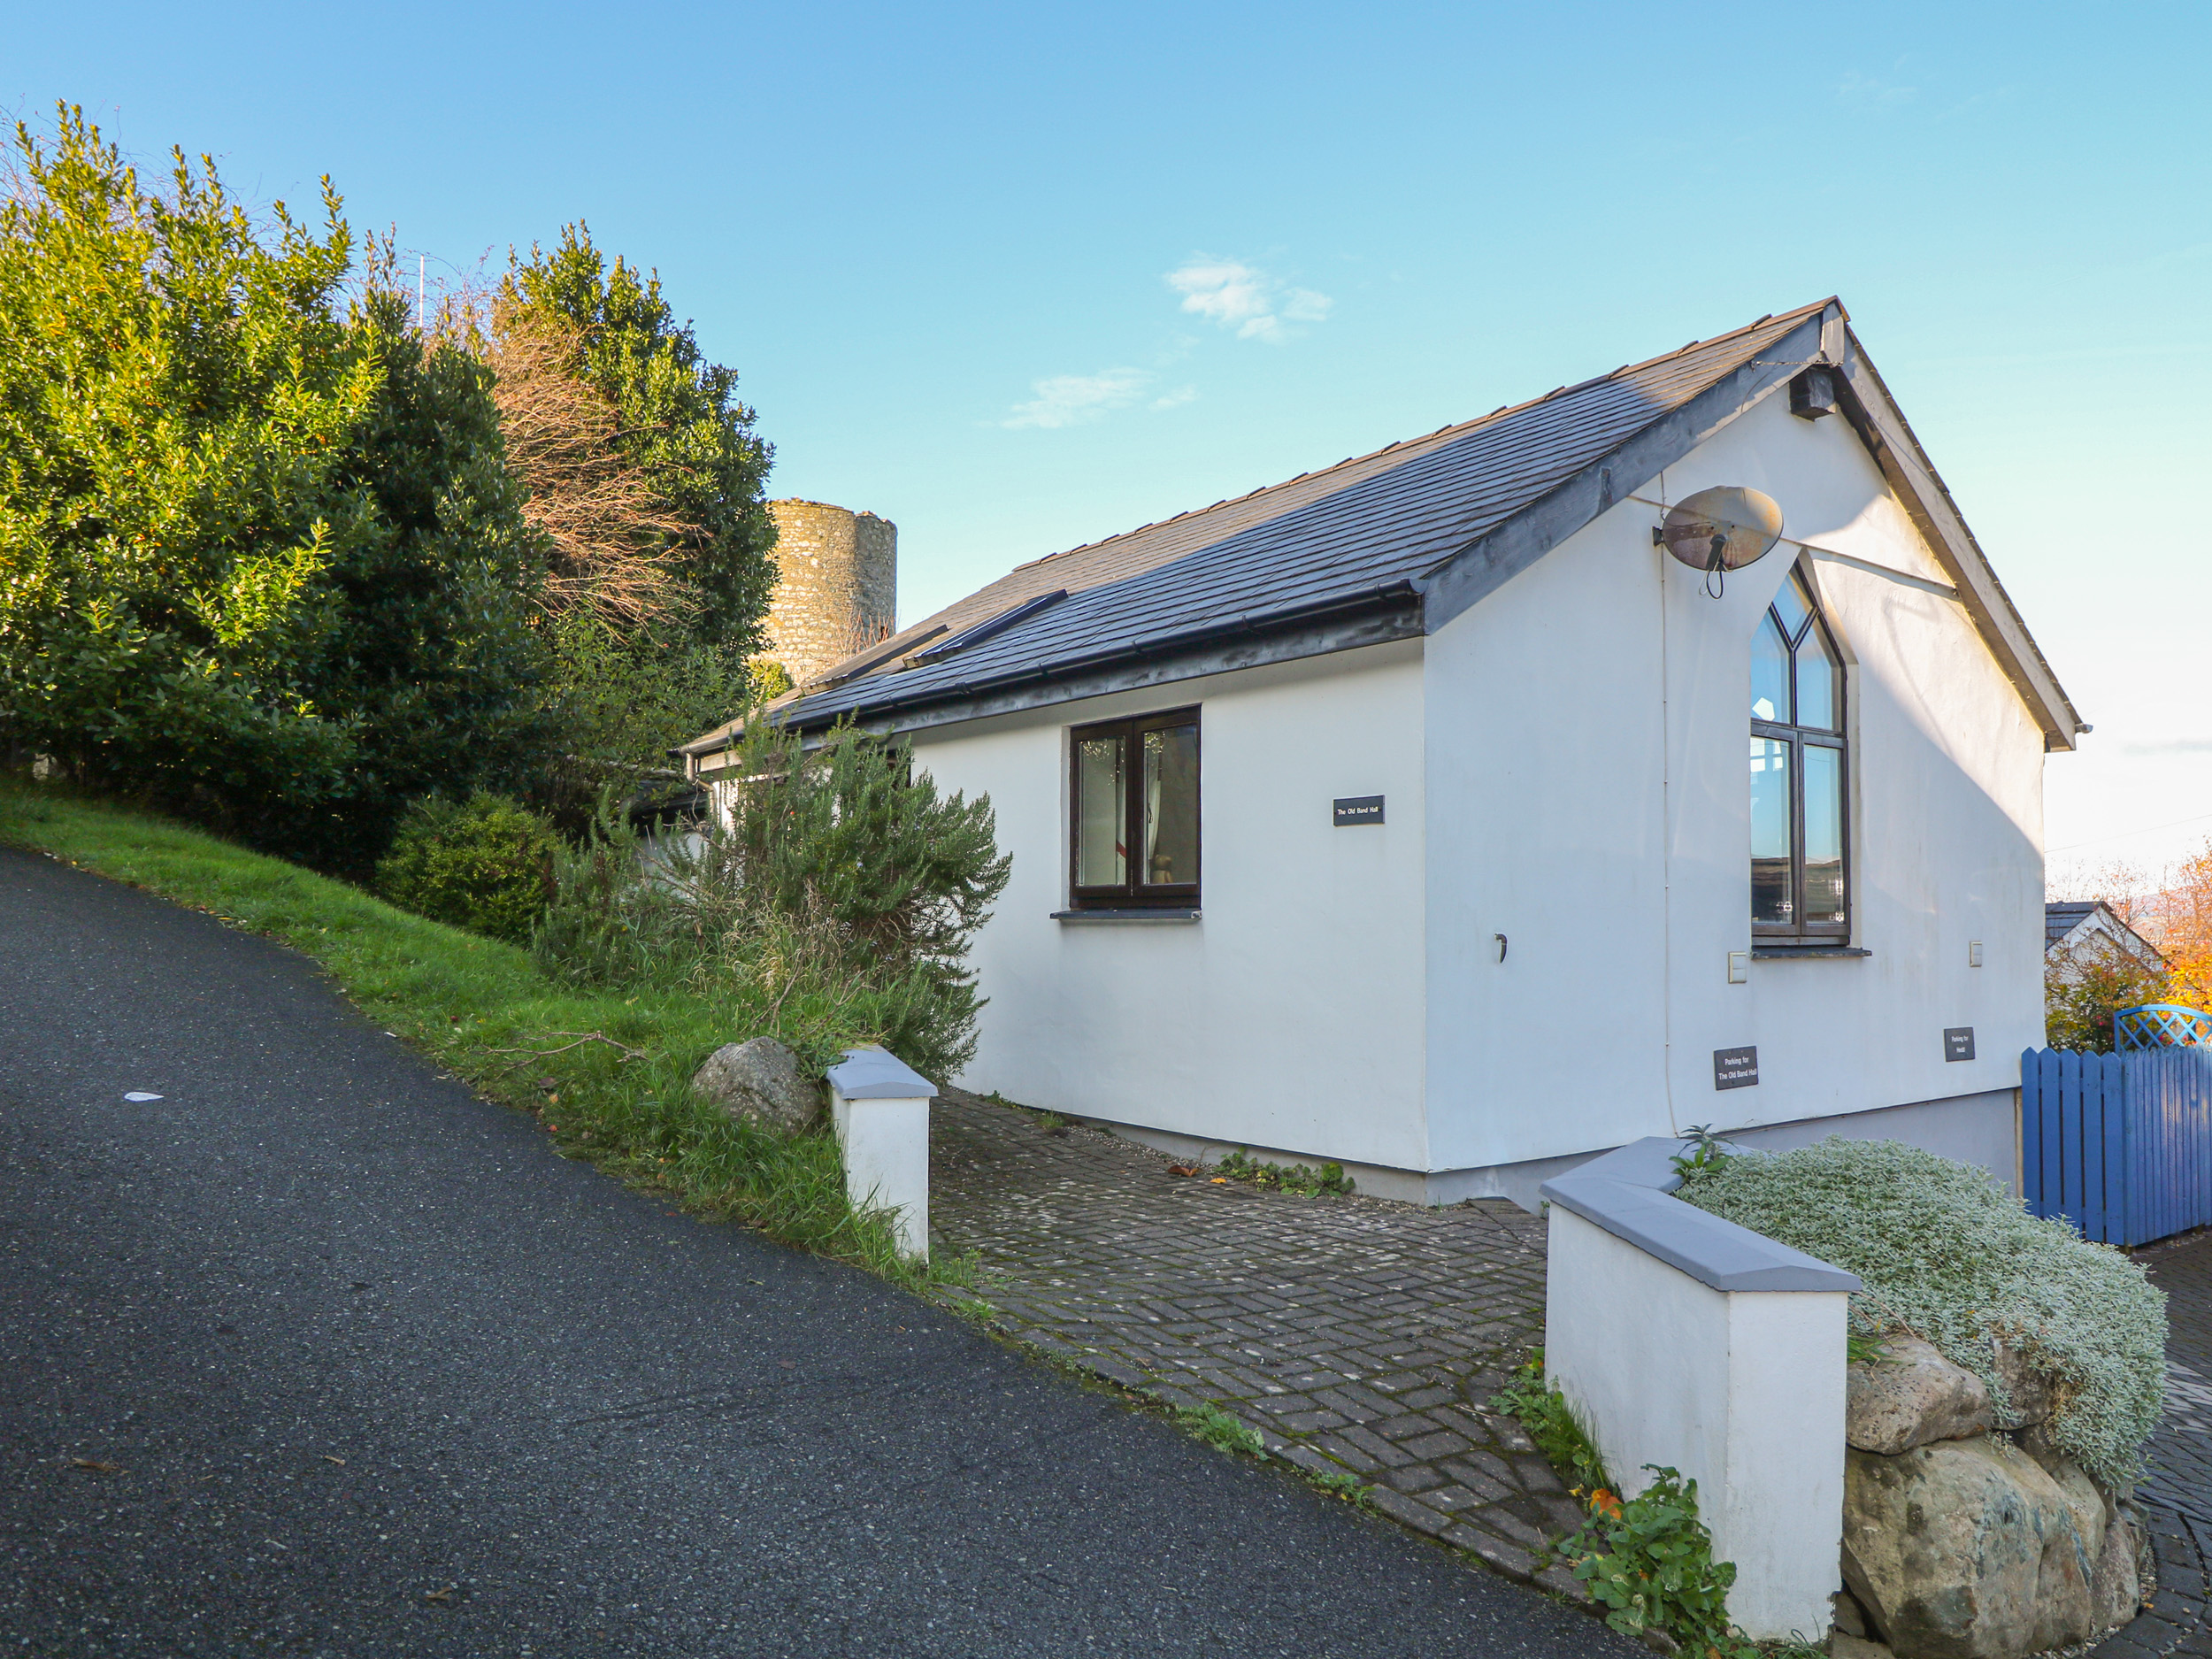 1 bedroom Cottage for rent in Harlech